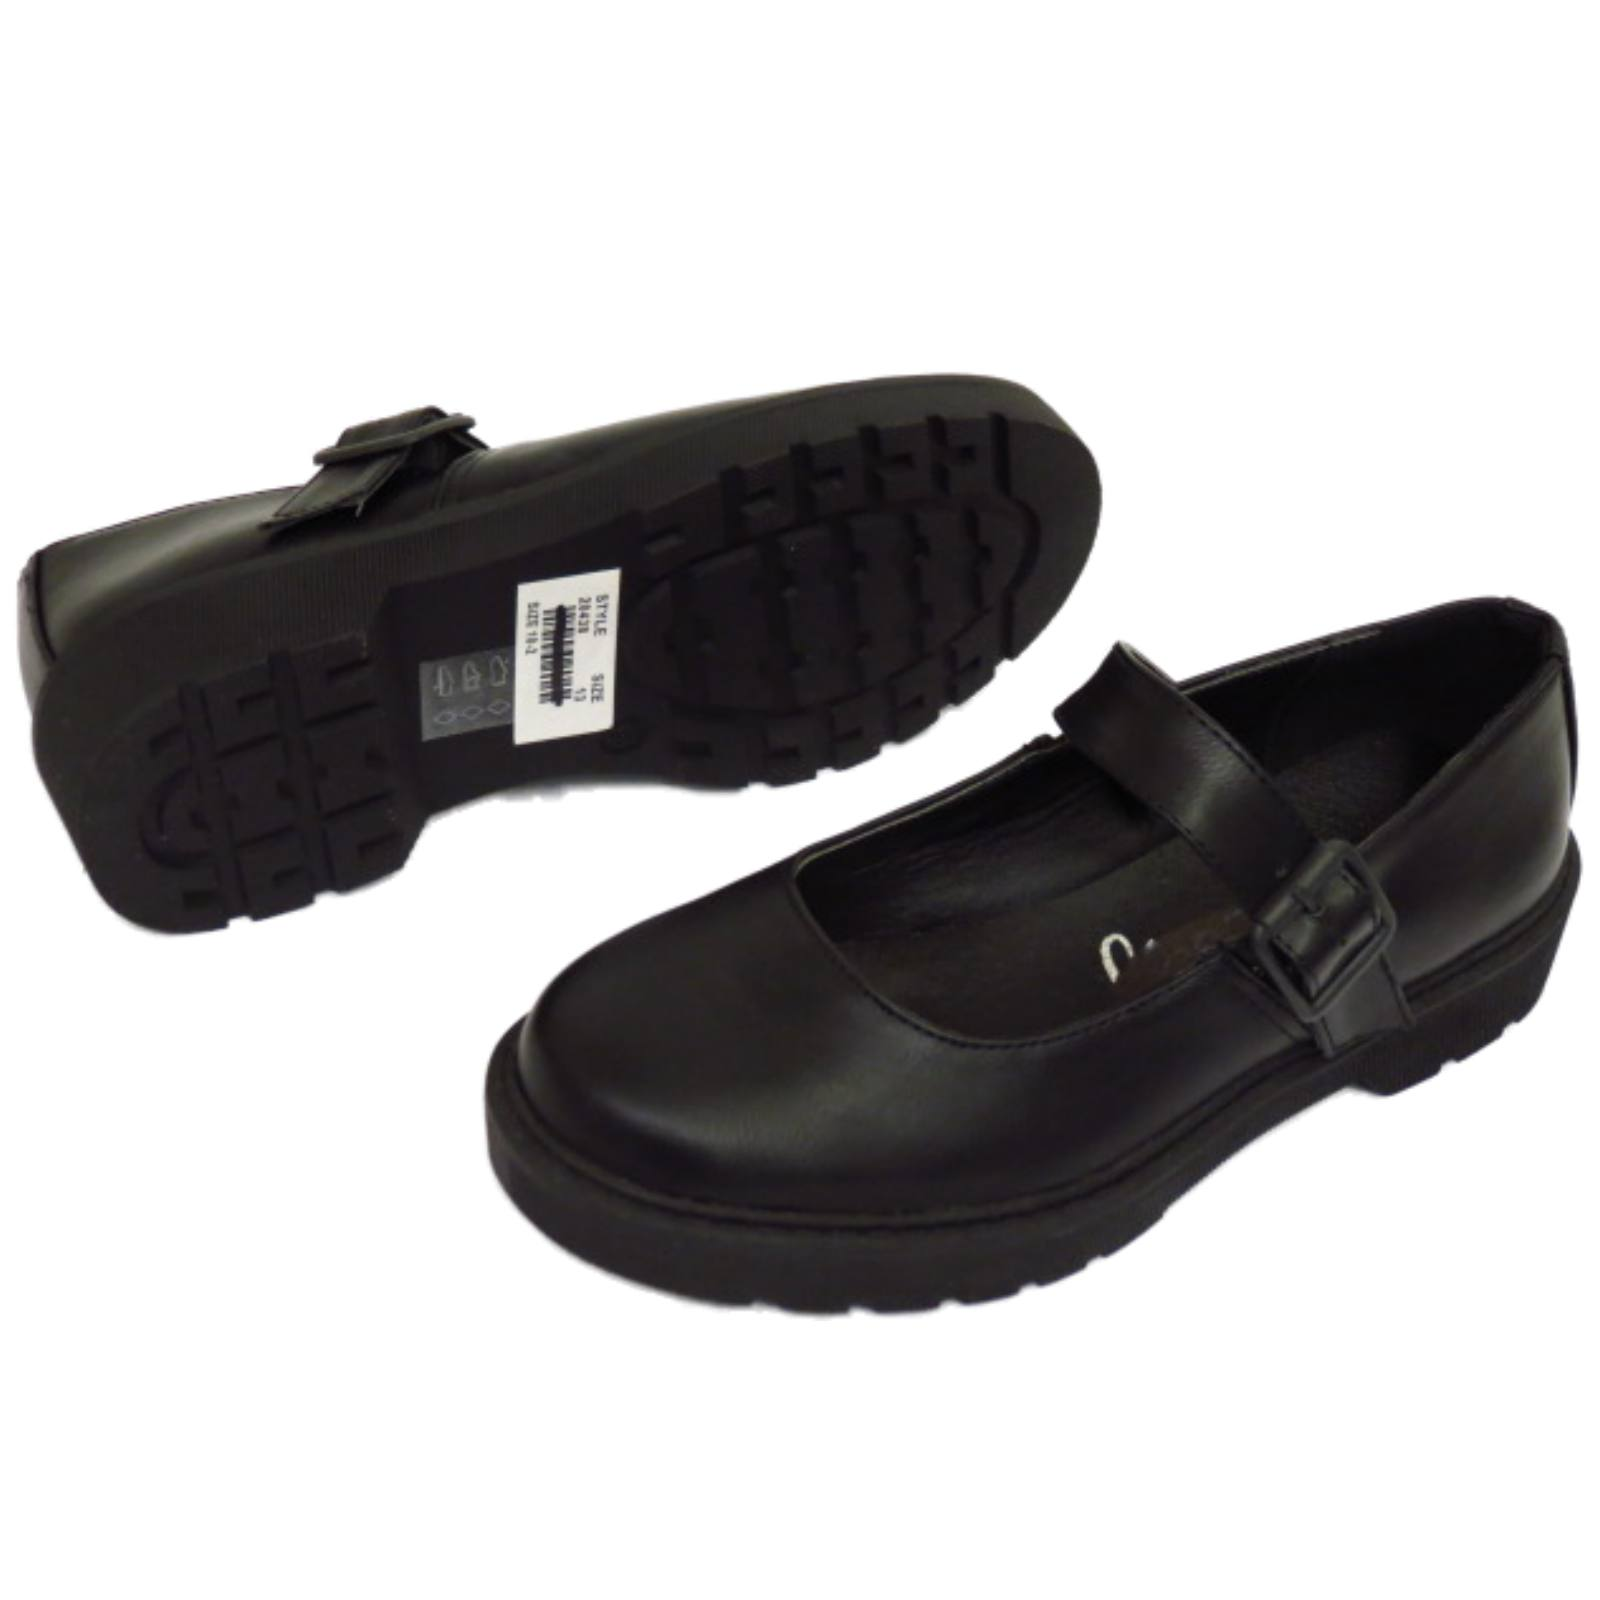 GIRLS-KIDS-CHILDRENS-BUCKLE-T-BAR-BLACK-SCHOOL-PUMPS-DOLLY-SMART-FLAT-SHOES-10-5 thumbnail 8